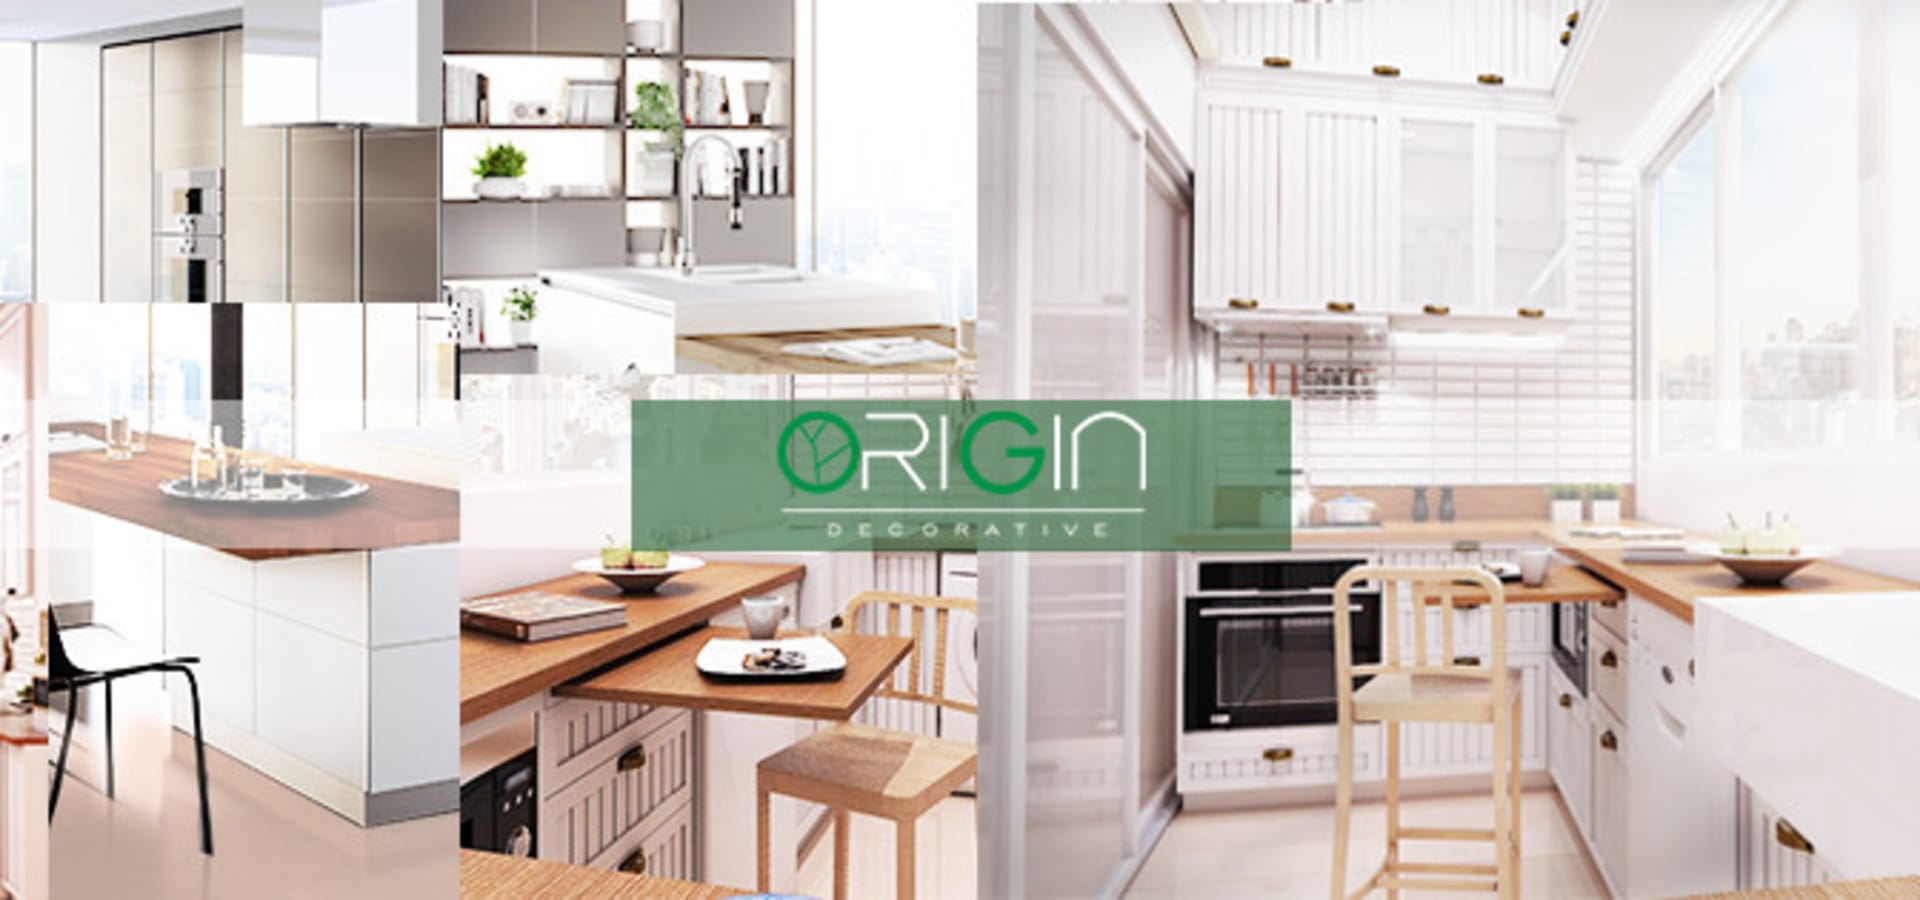 Origin Decorative